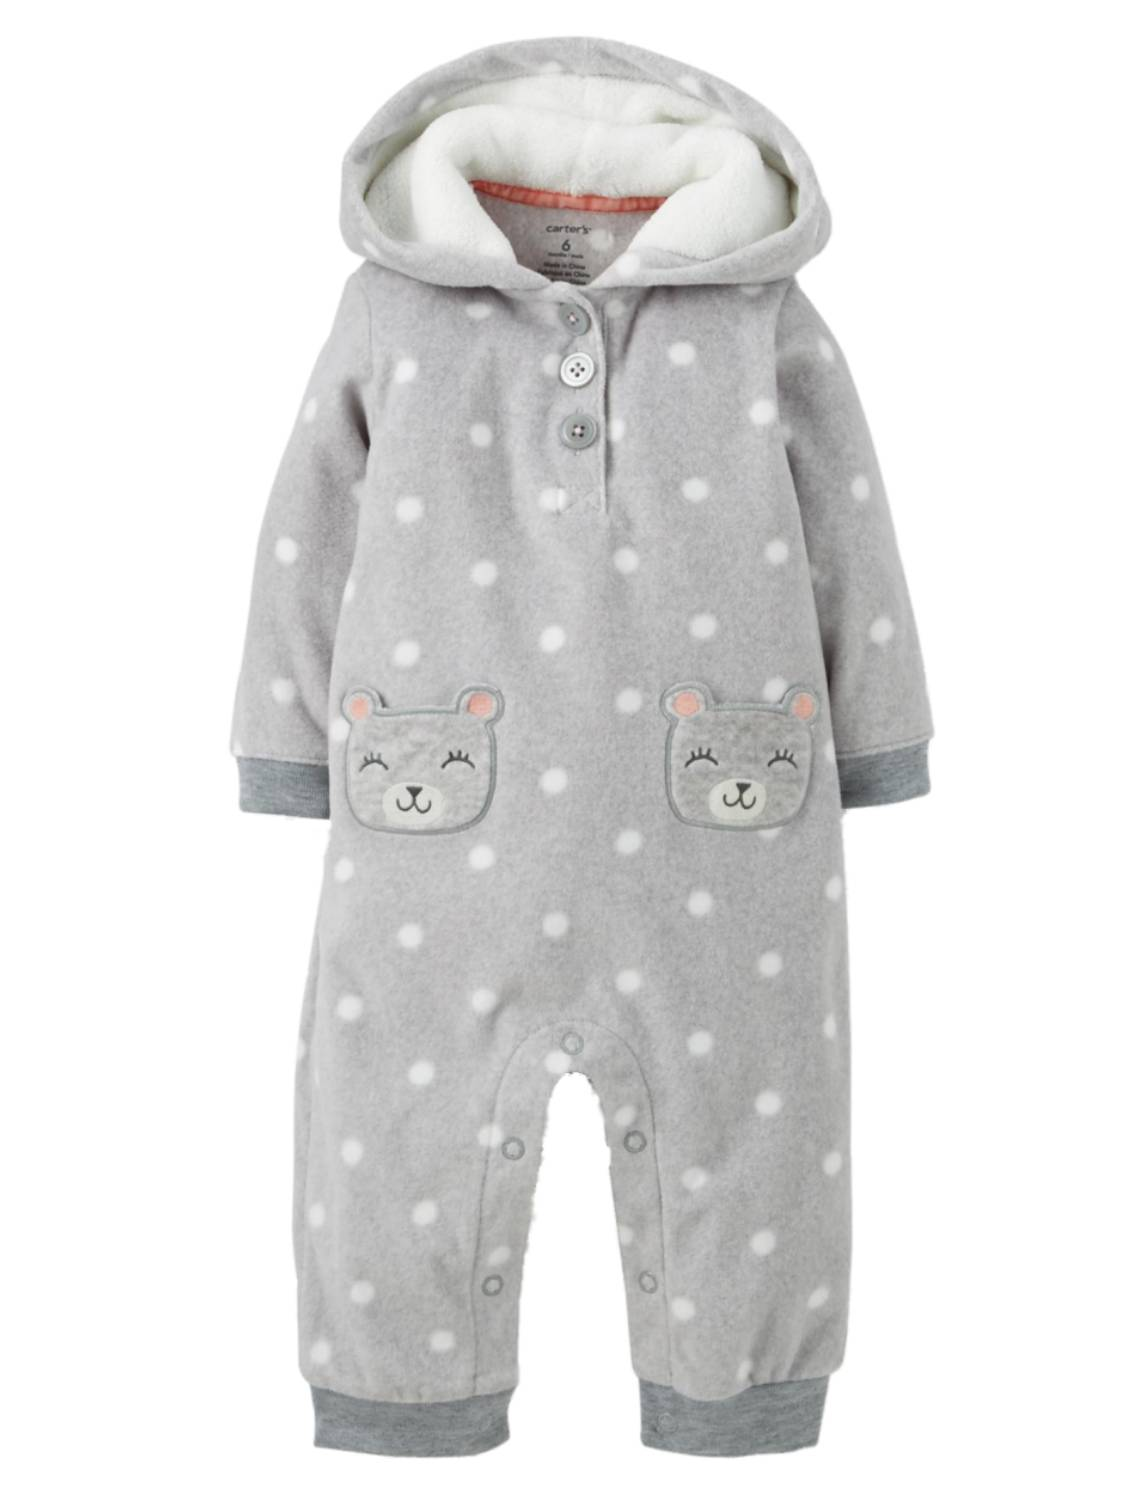 16d29b791281 Carter s Carters Infant Girls Gray Fleece Polka Dot Teddy Bear ...